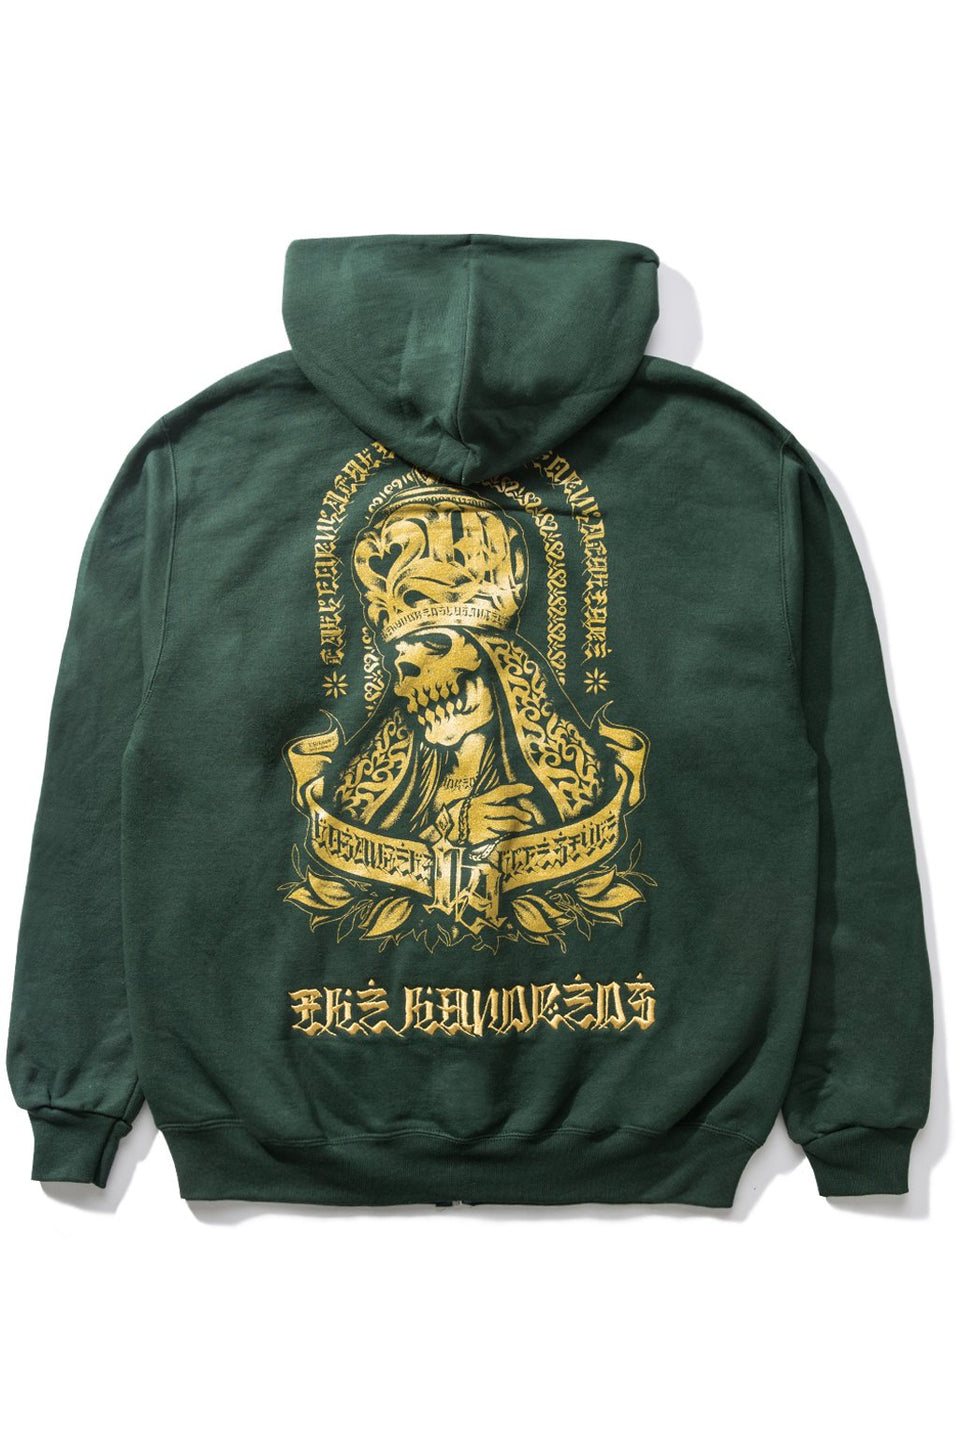 Usugrow Culture Zip-Up Hoodie